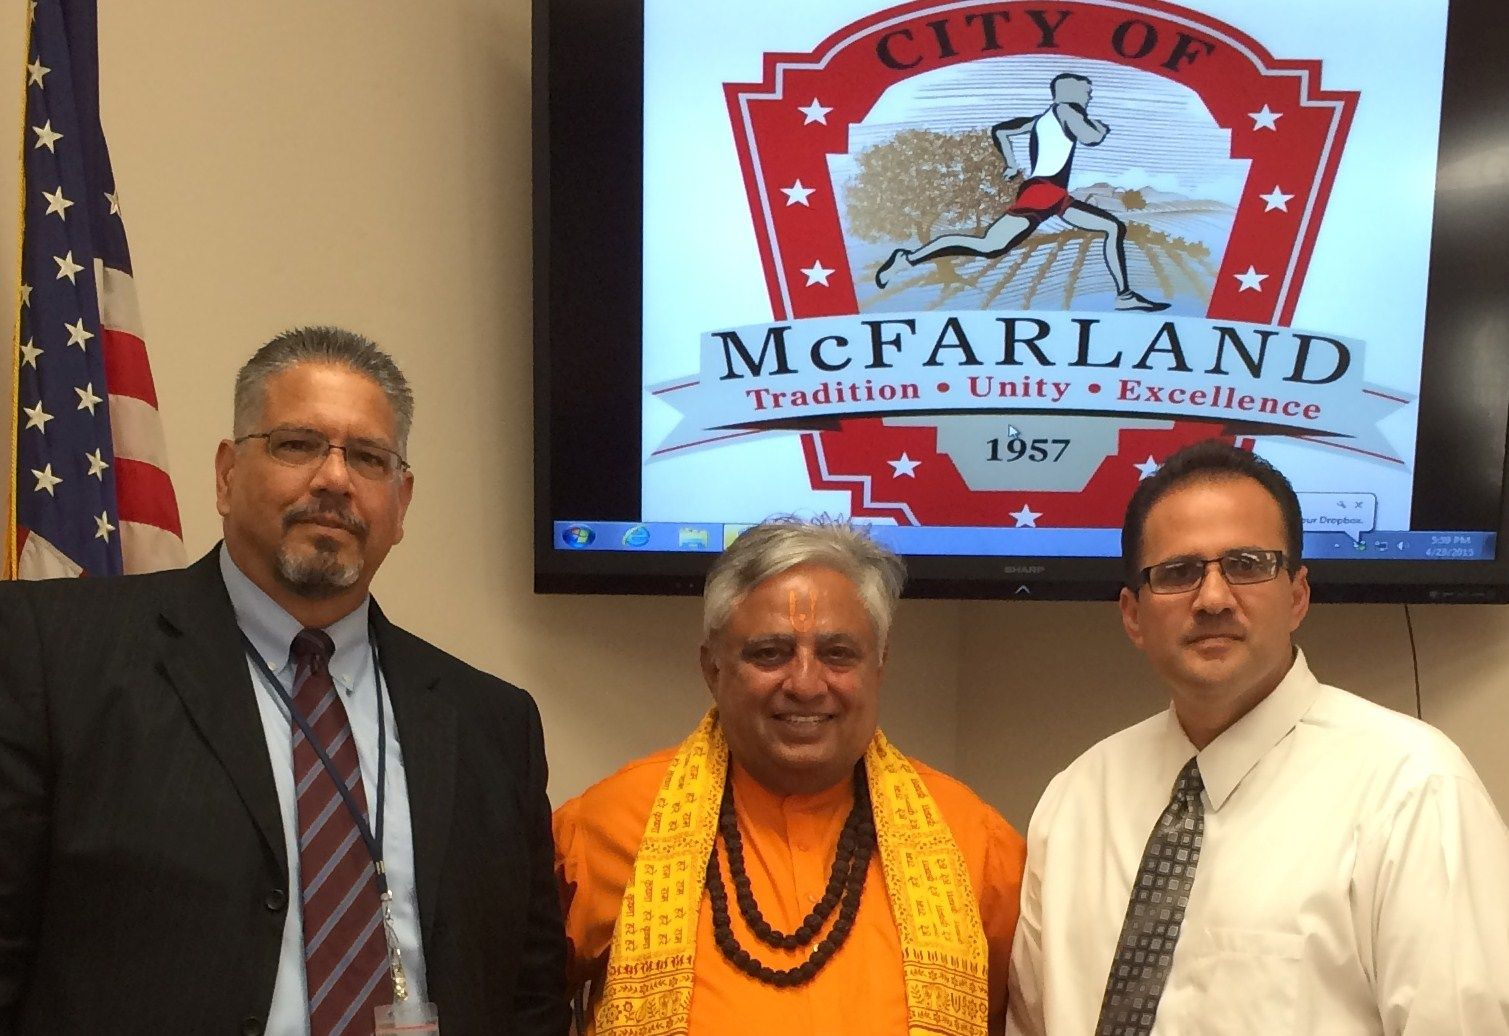 Just before McFarland CA  City Council invocation